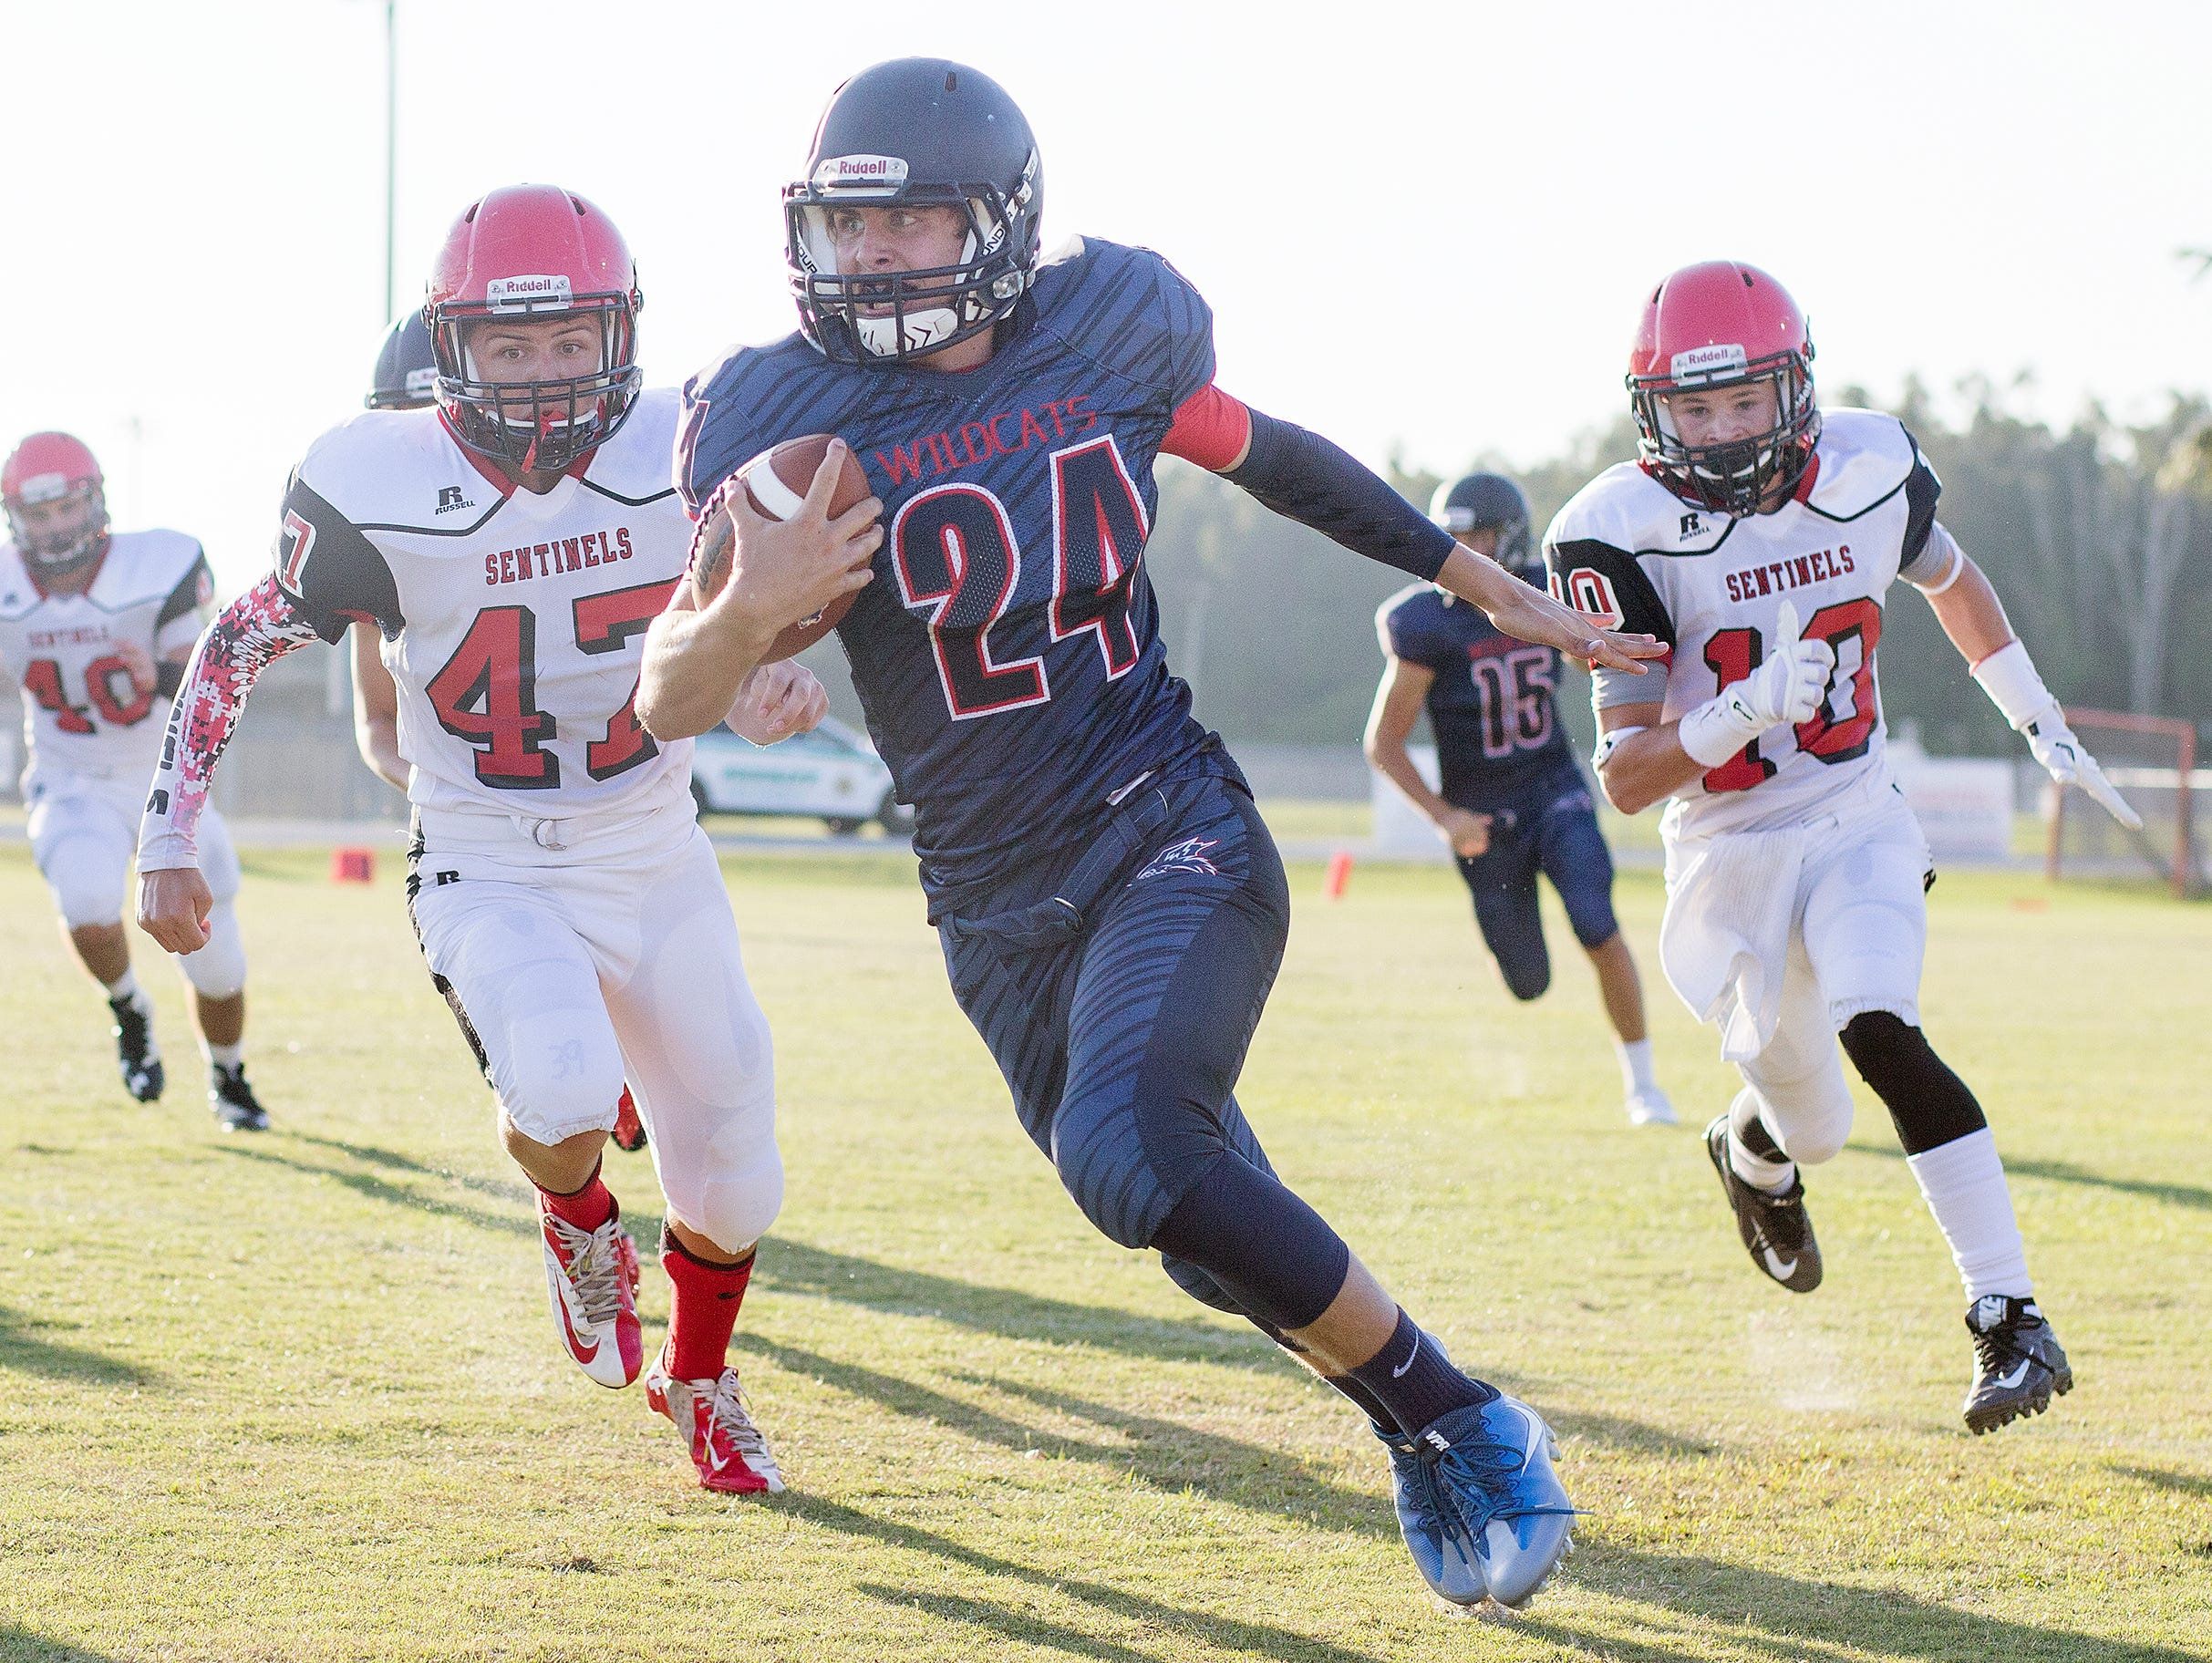 Estero High School's Max Bossi picks up a first down against Evangelical Christian School on Thursday at Estero High School.